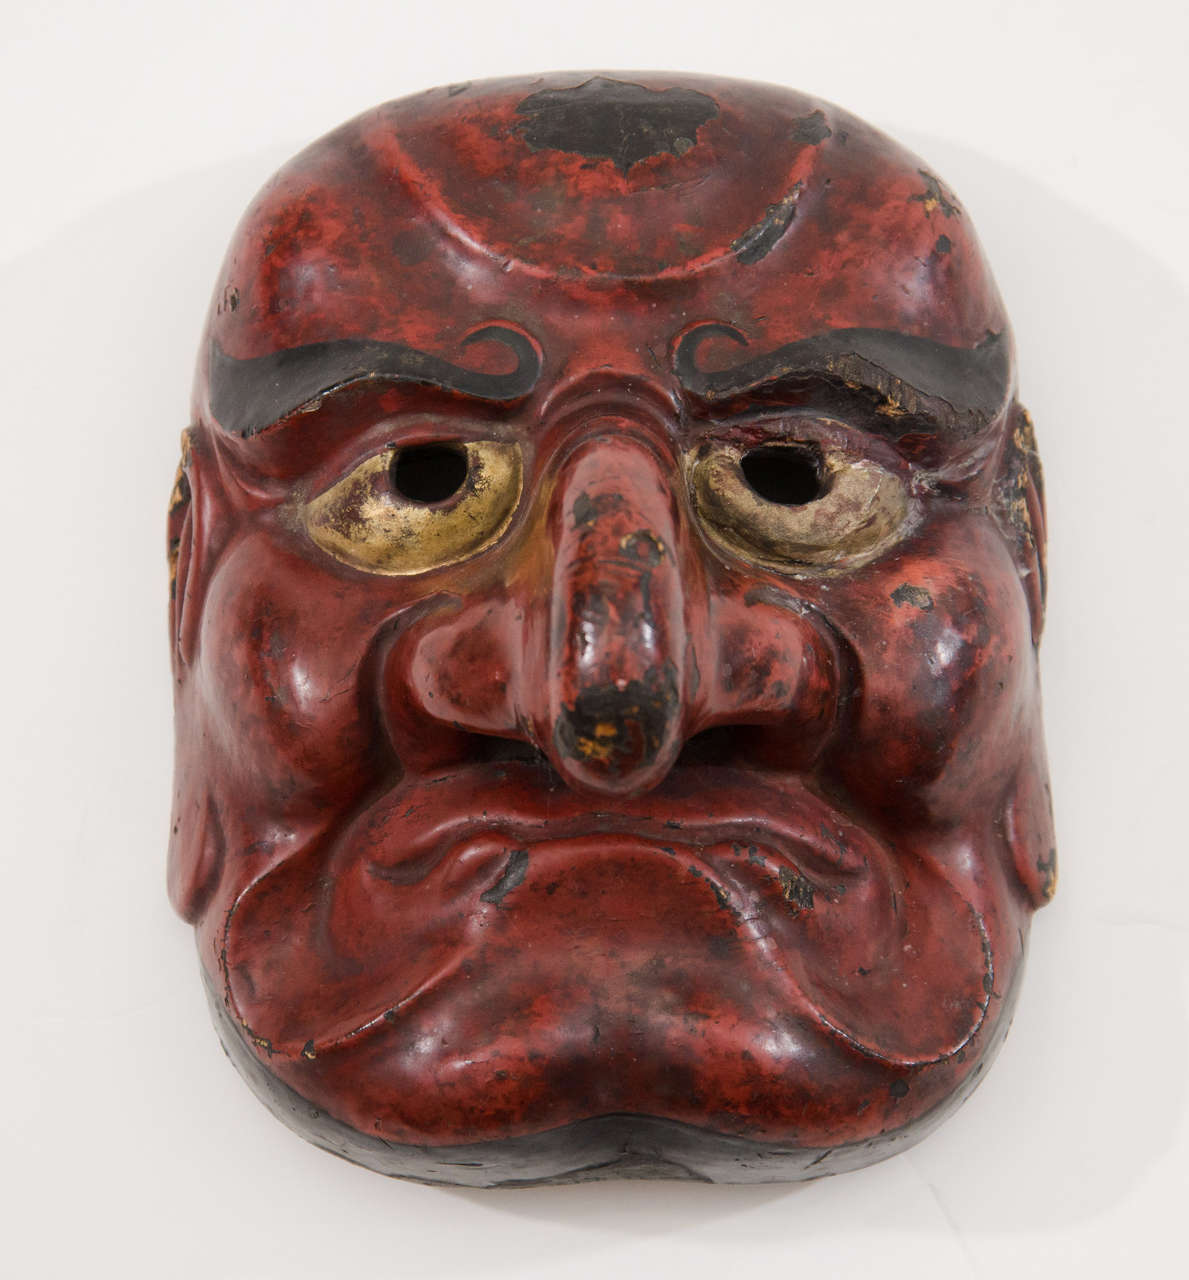 A rare Japanese comic demon Buaku Kyogen mask dating from the Edo Period, the golden age of Noh Drama.  The Buaku mask is a Kyogen version of the Noh Beshimi.  Kyogen were short, humorous skits performed between Noh acts to lighten the mood.  The